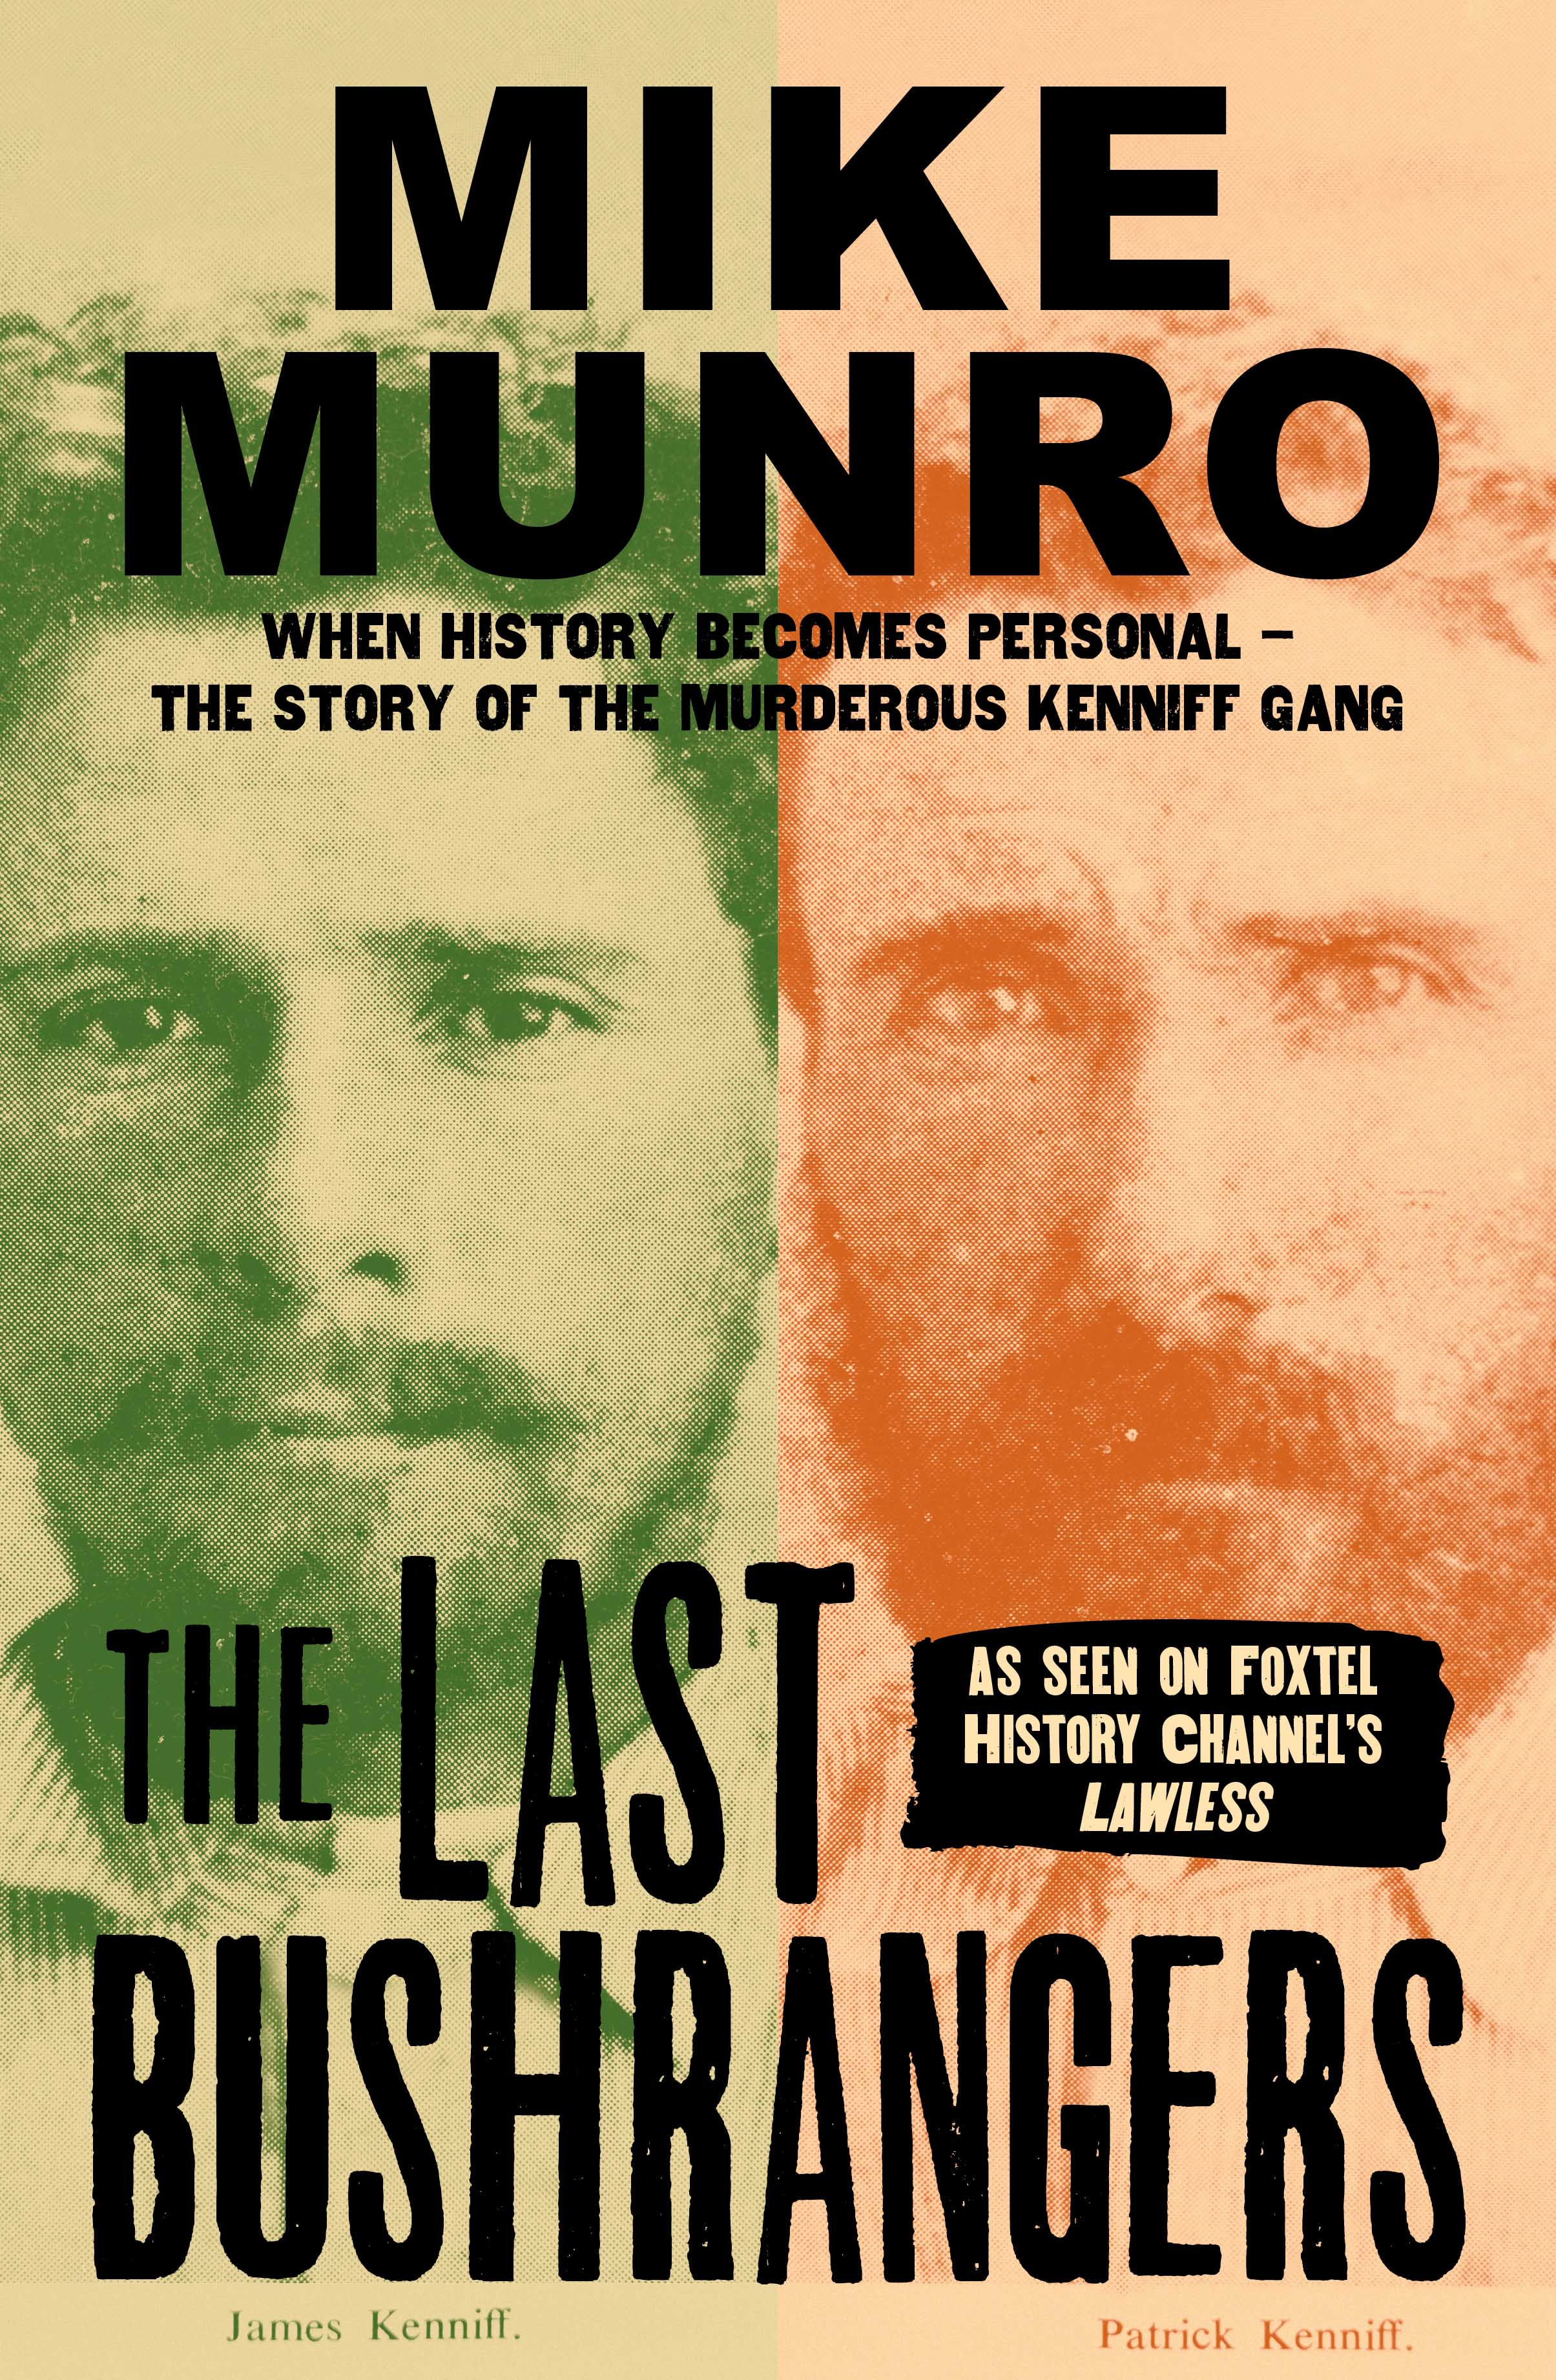 The last of the bushrangers: When the past got personal for Mike Munro